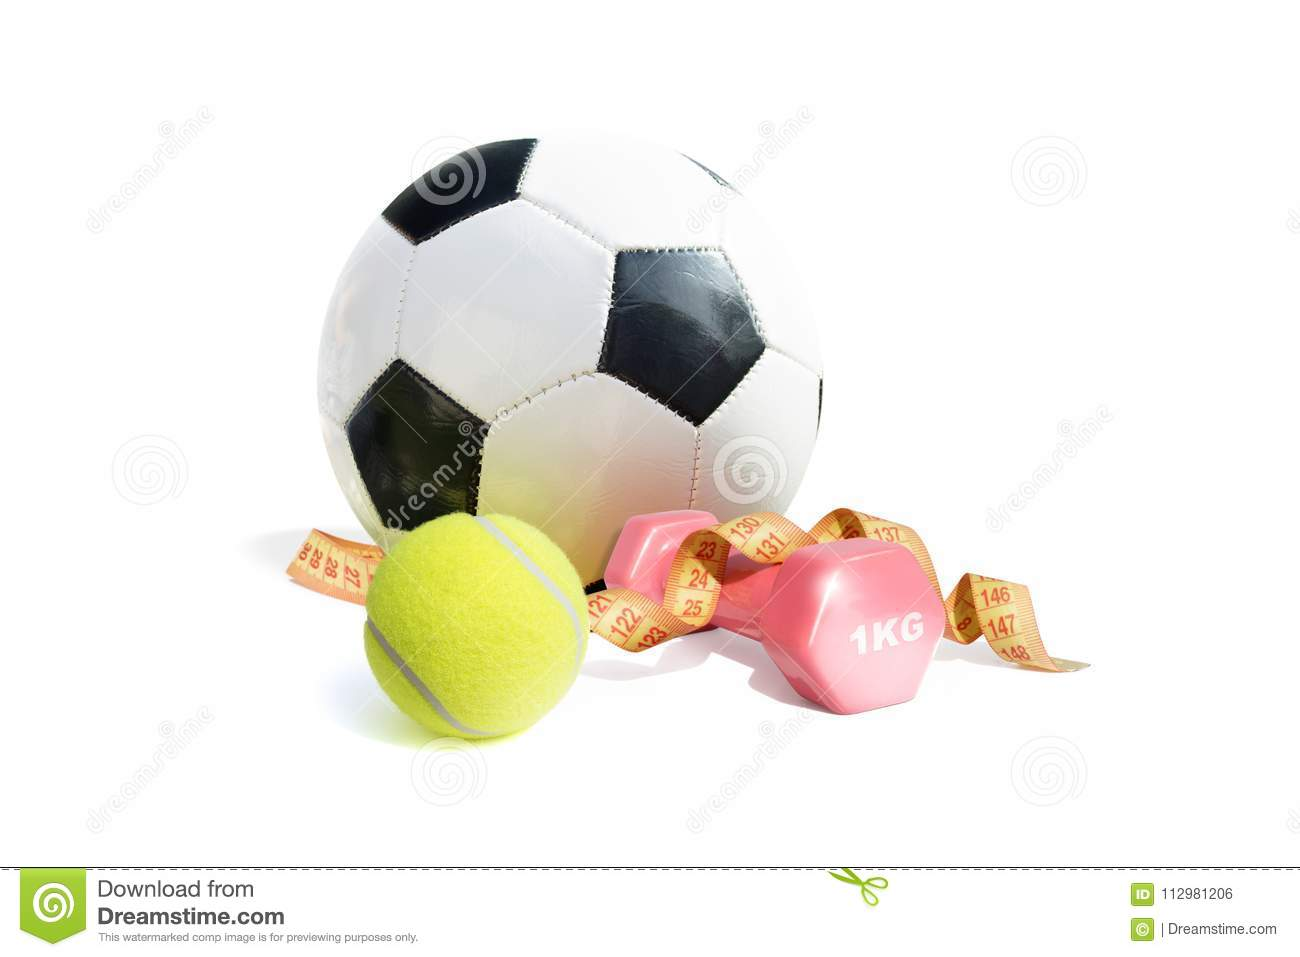 Colorful sport equipment isolated on white background